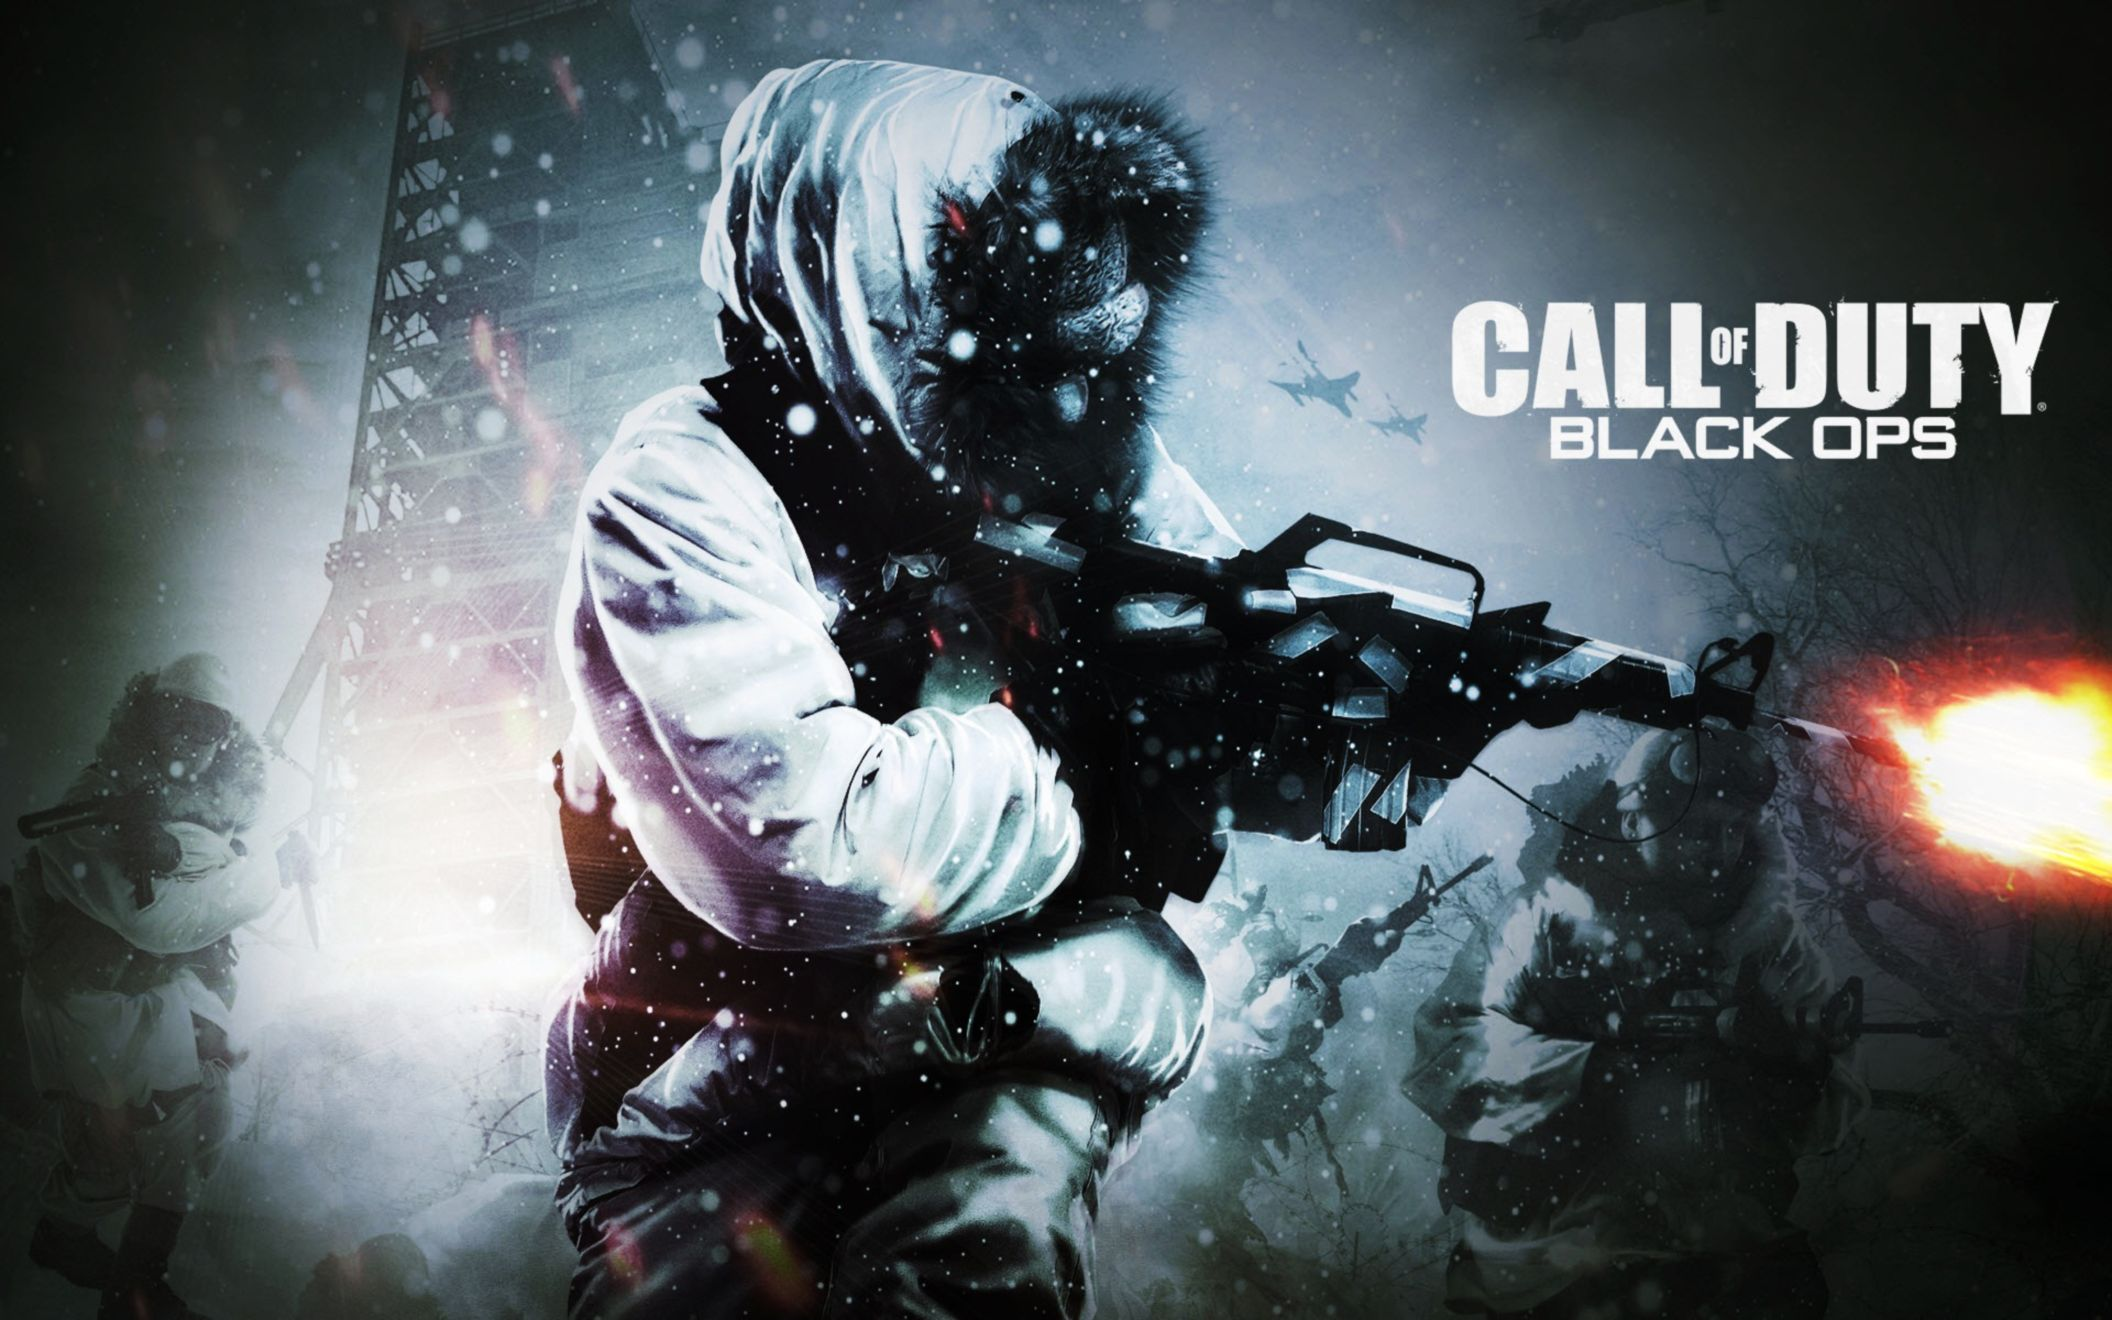 Download free HD Call of Duy Black Ops 2010 Wide Wallpaper, image